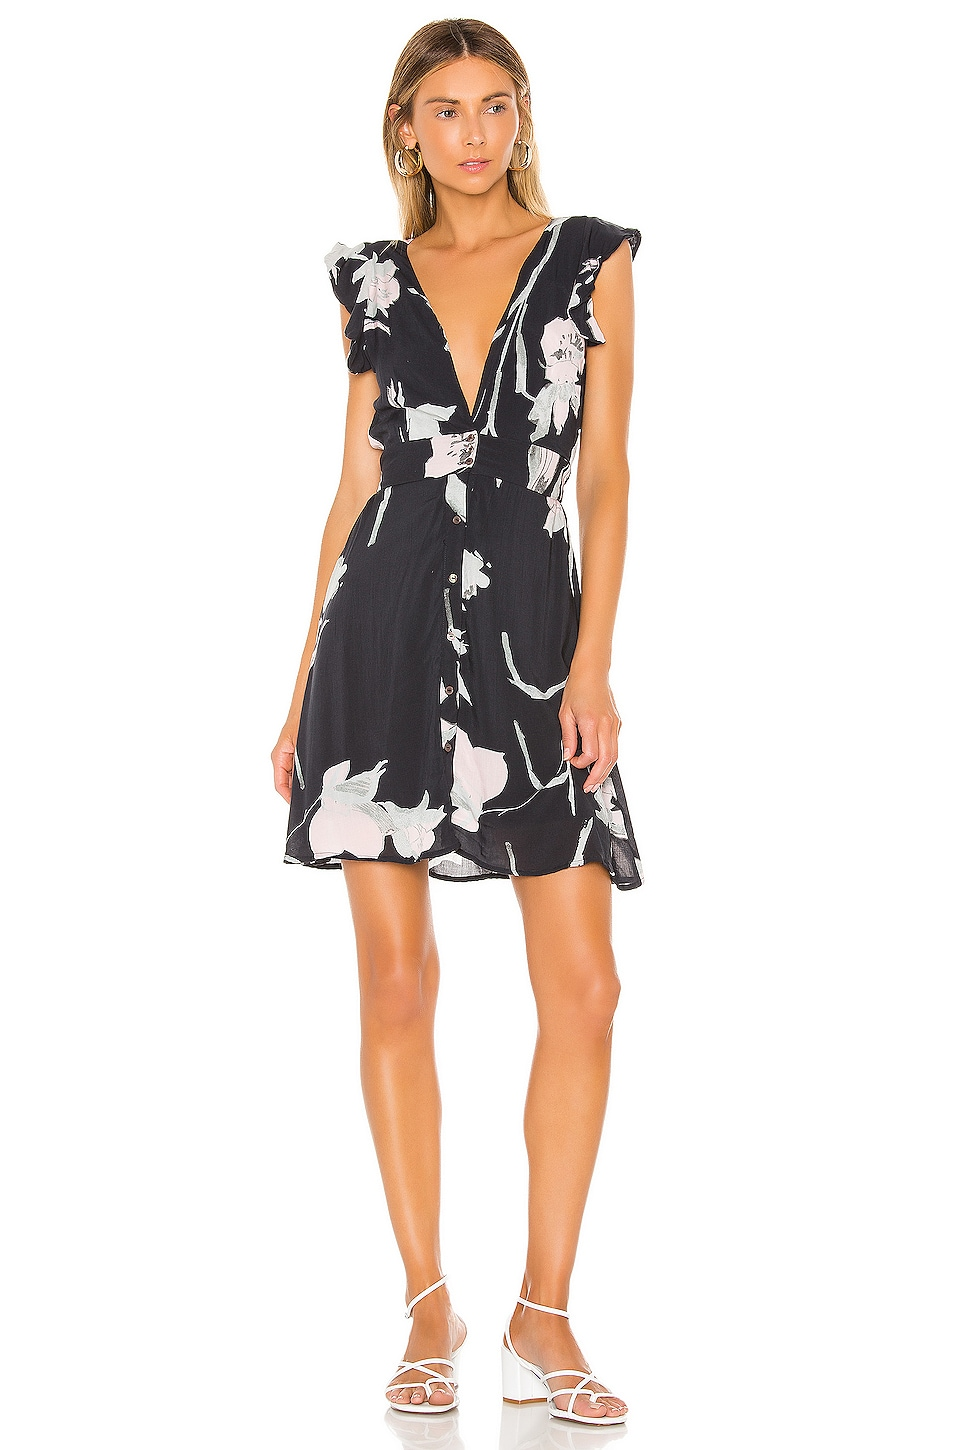 Maaji Canadian Goldenrod Mini Dress in Black Floral